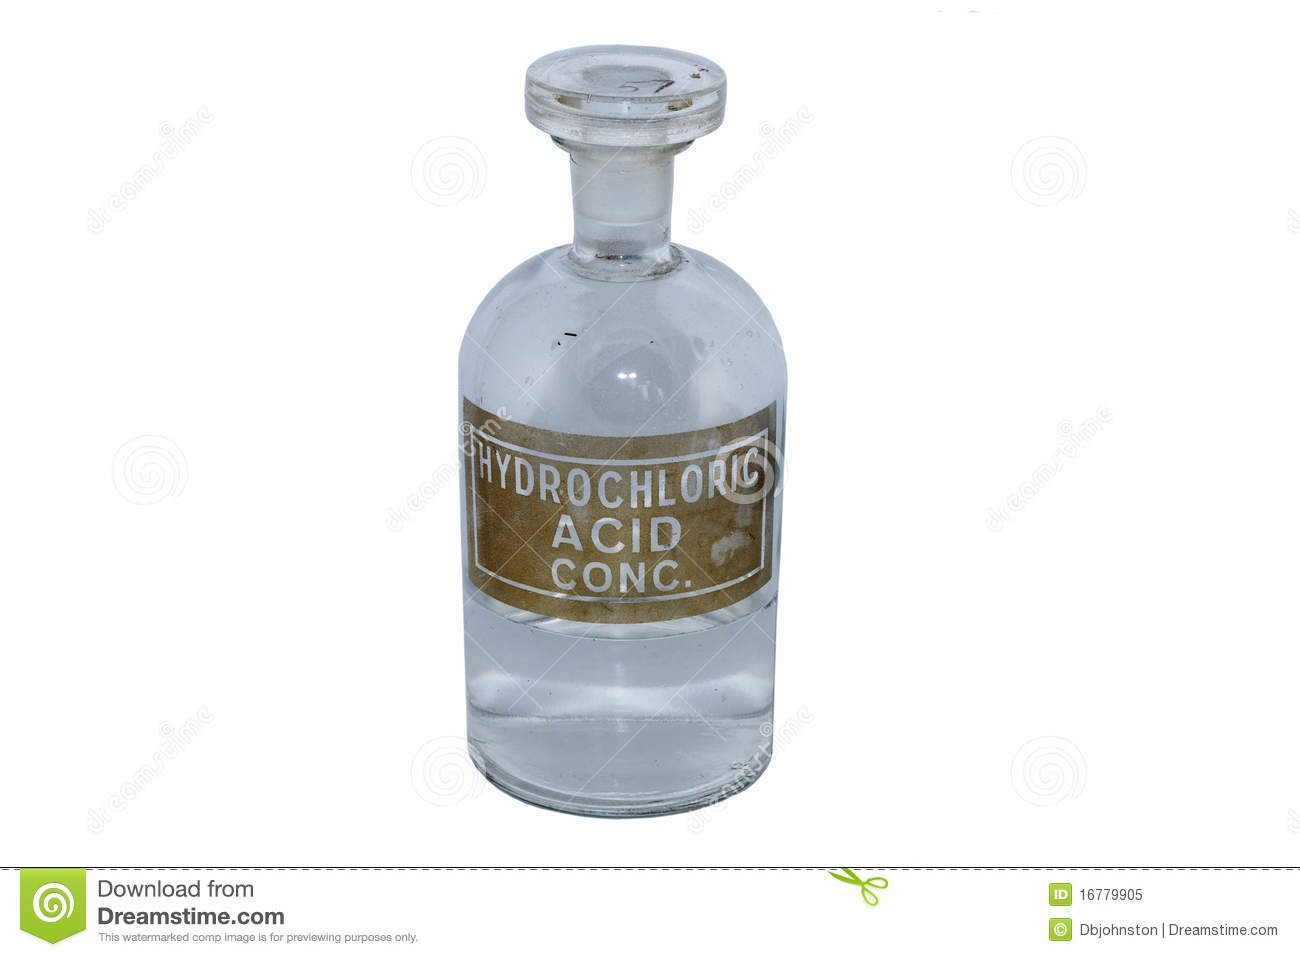 Hydrochloric Acid Bottle Royalty Free Stock Photo - Image: 16779905